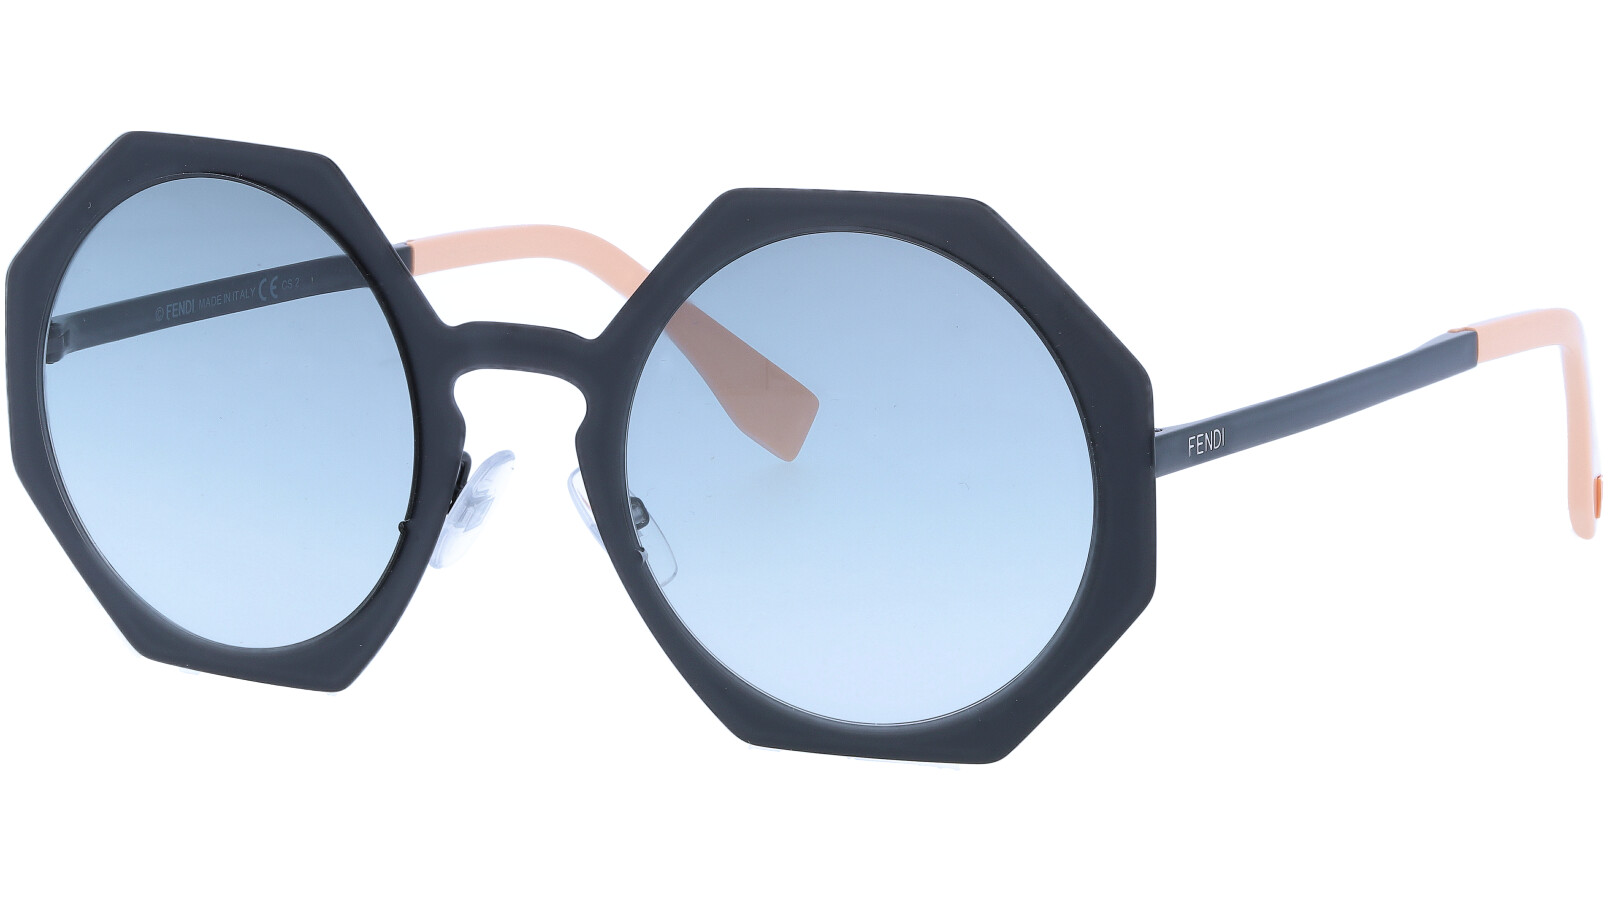 FENDI FF0152/S 003JJ 51 Matt Black Geometric Sunglasses